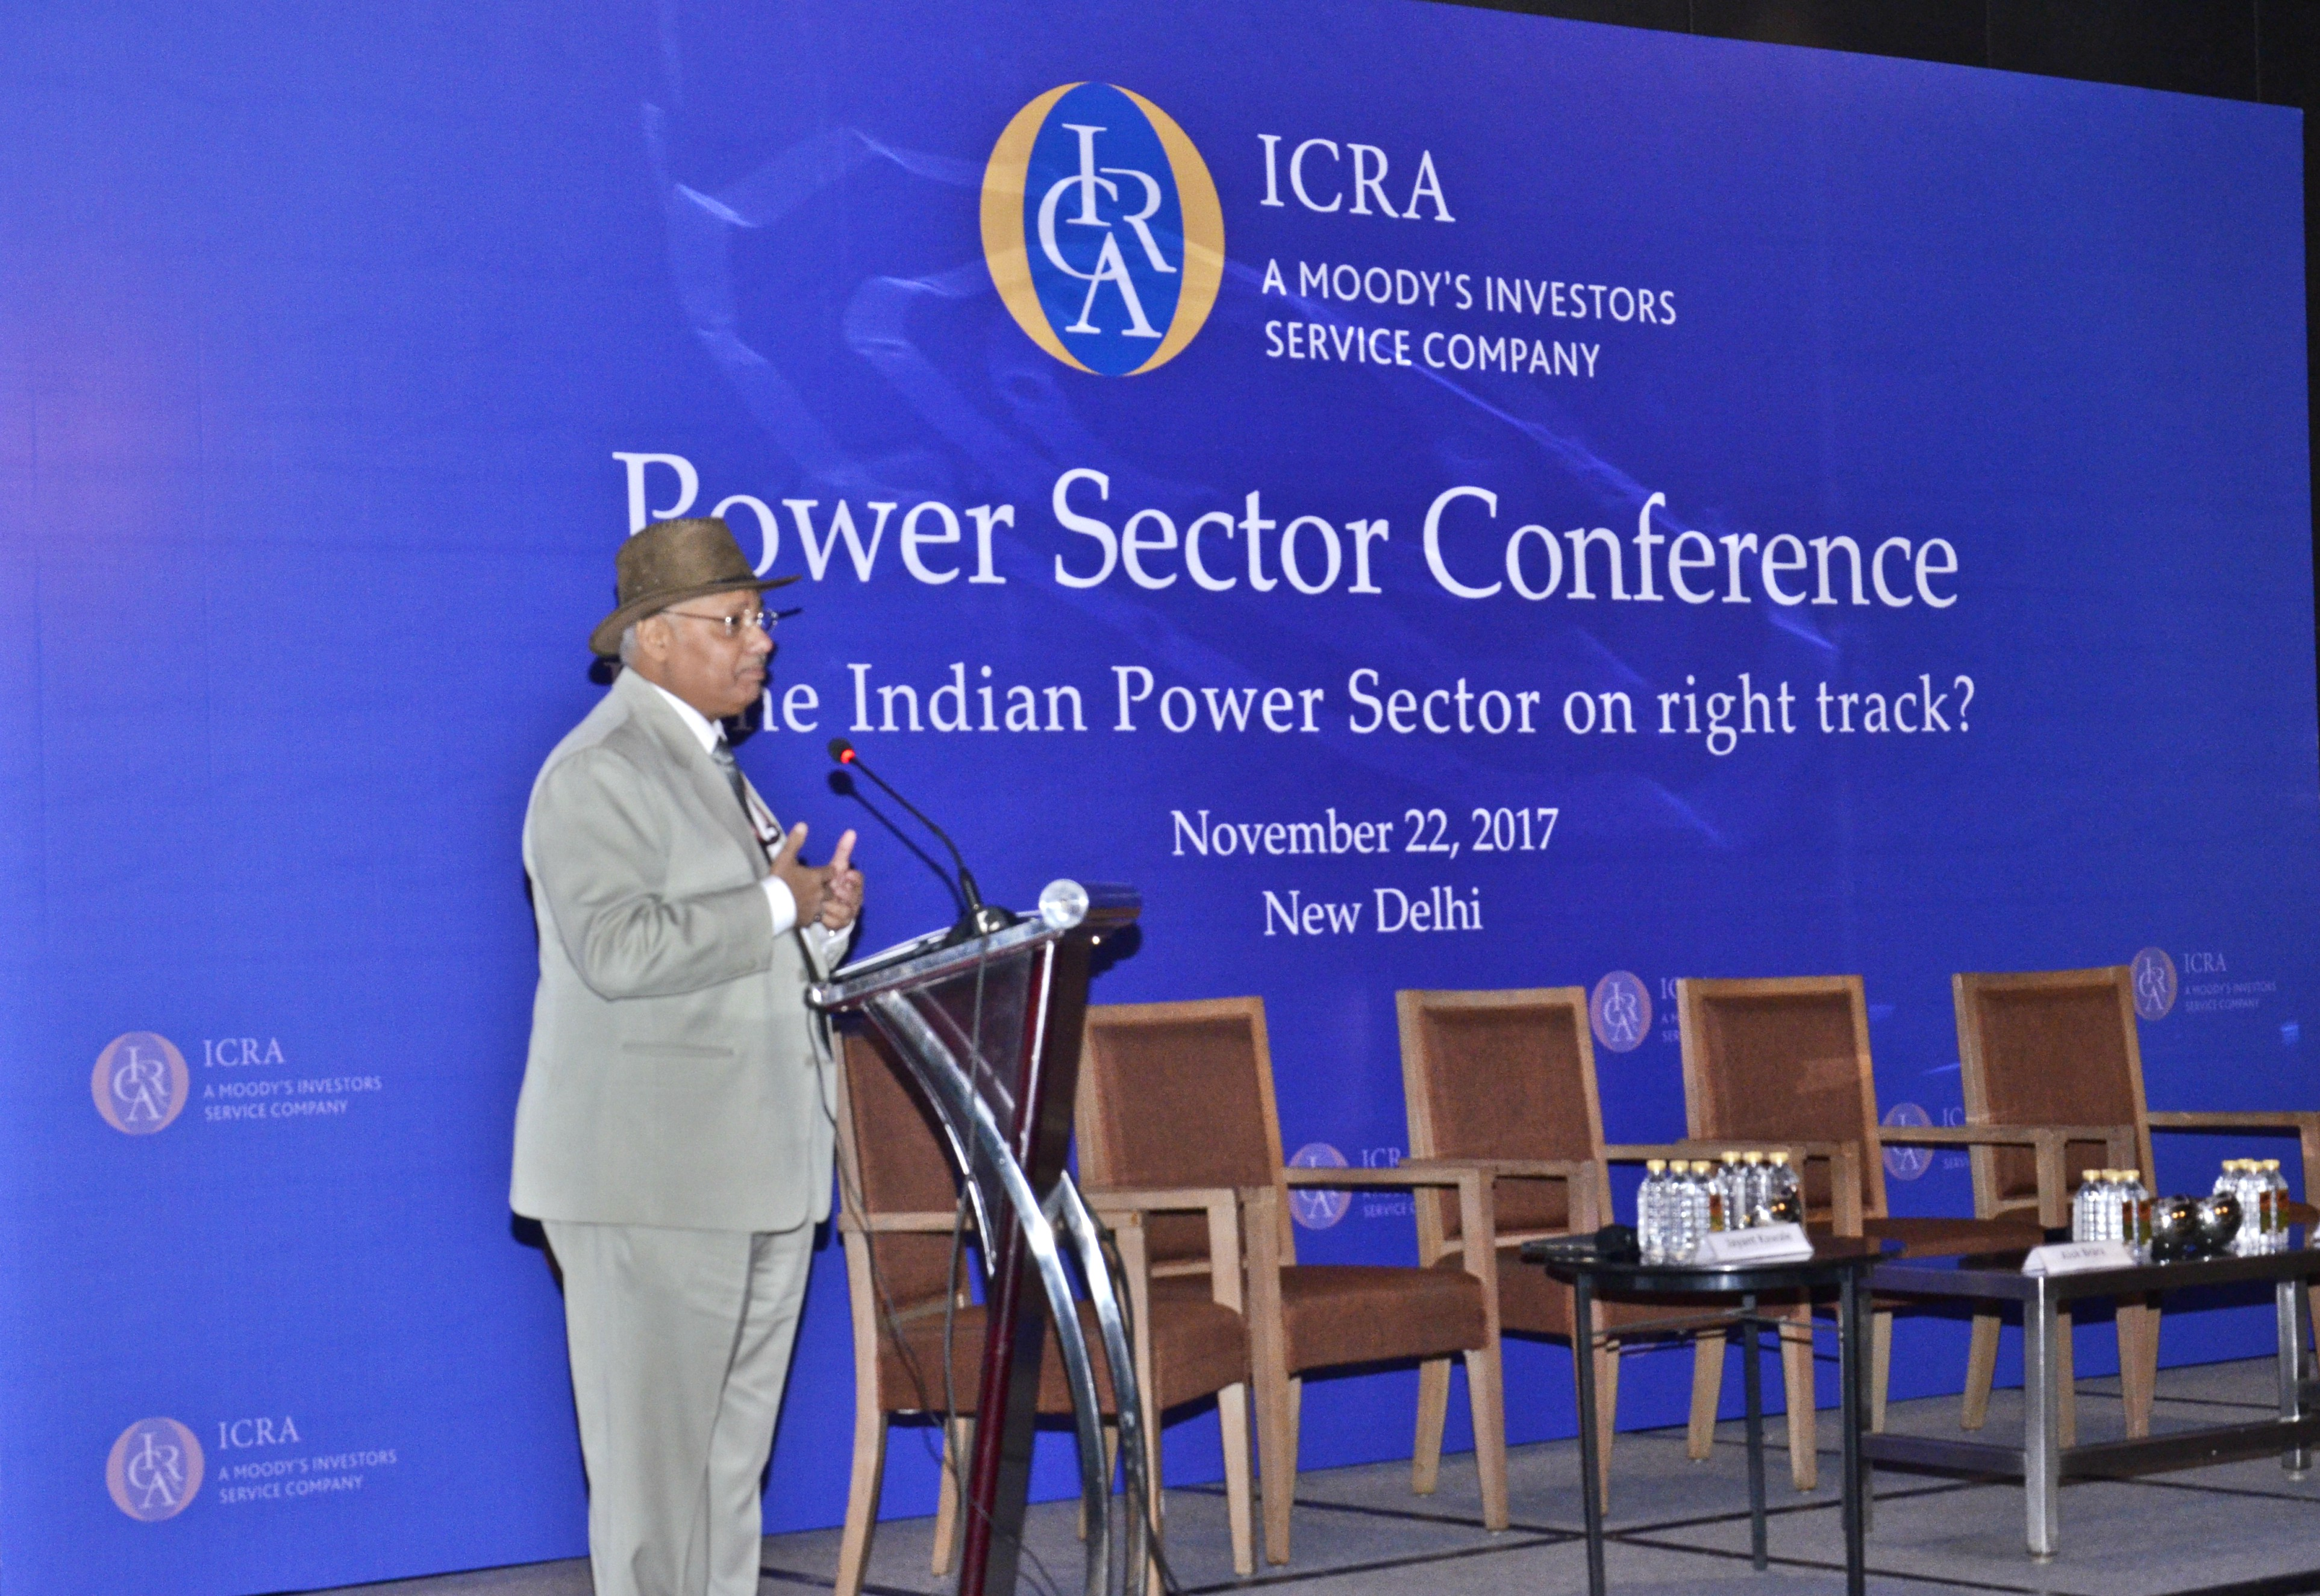 Dr. A.K. Verma, Joint Secretary, Ministry of Power sharing his experience on distribution reforms and schemes in Power sector